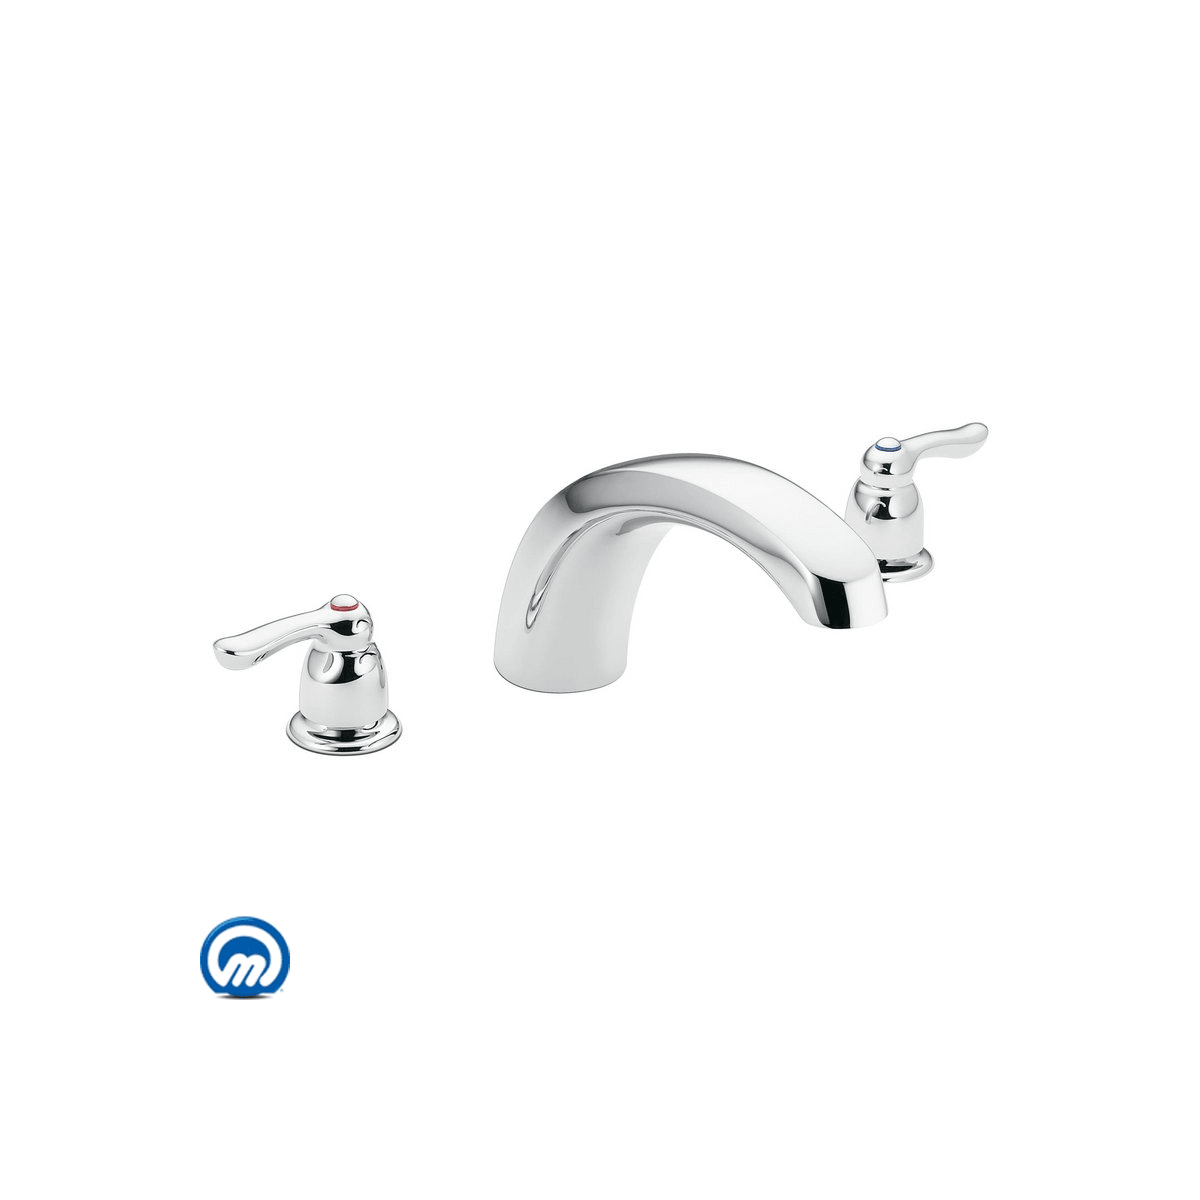 Moen T990 Chrome Deck Mounted Roman Tub Filler Trim From The